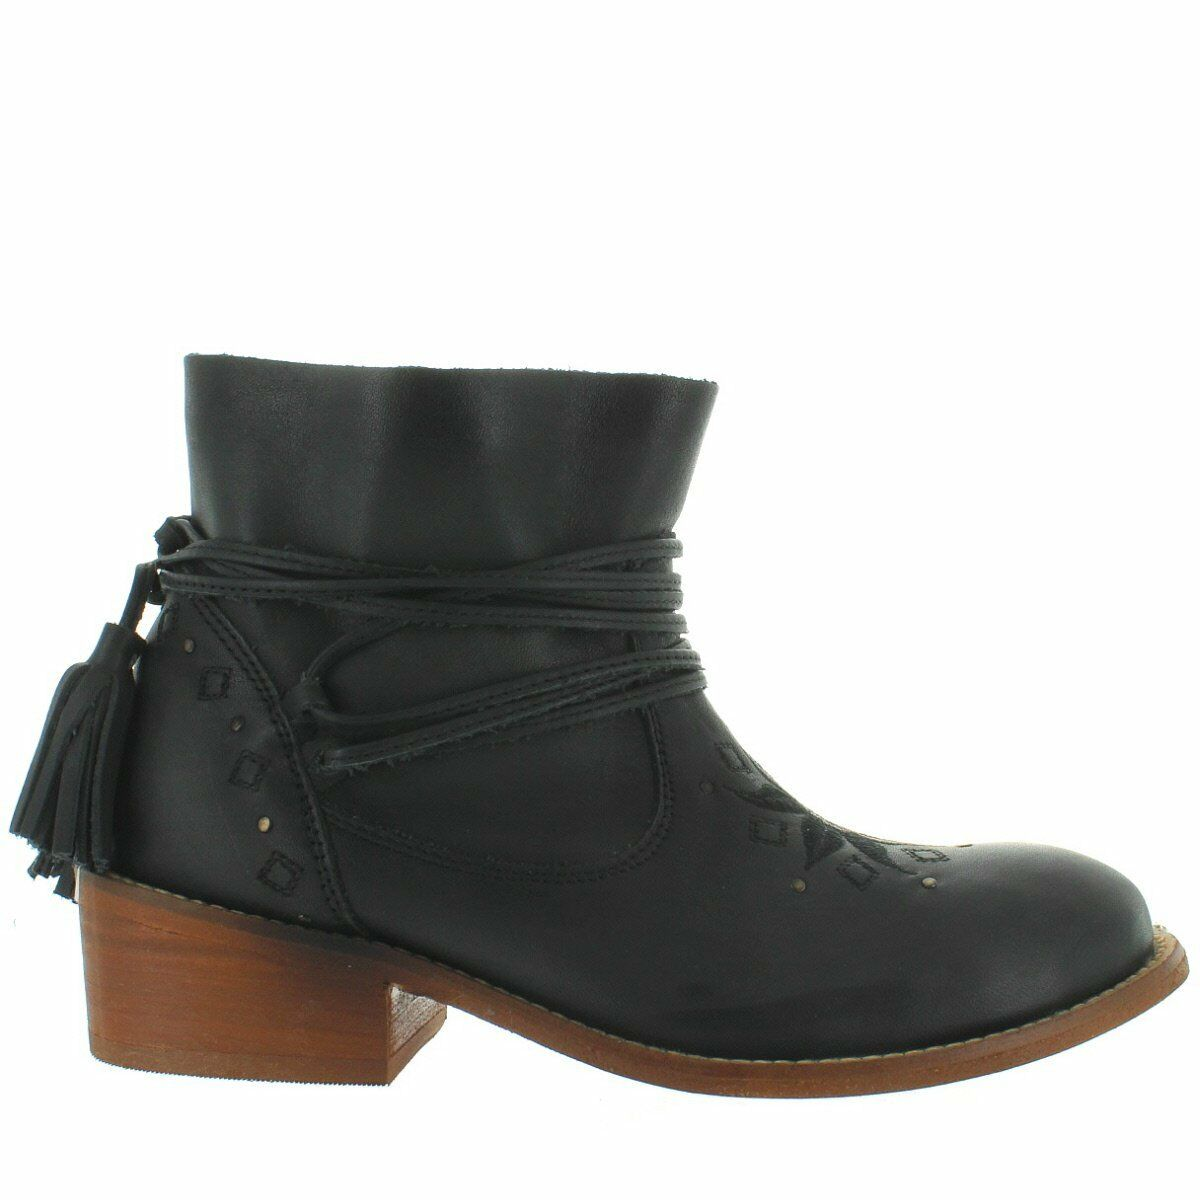 Musse & Cloud Kylie - Black Leather Tassel Wrap Short Bootie